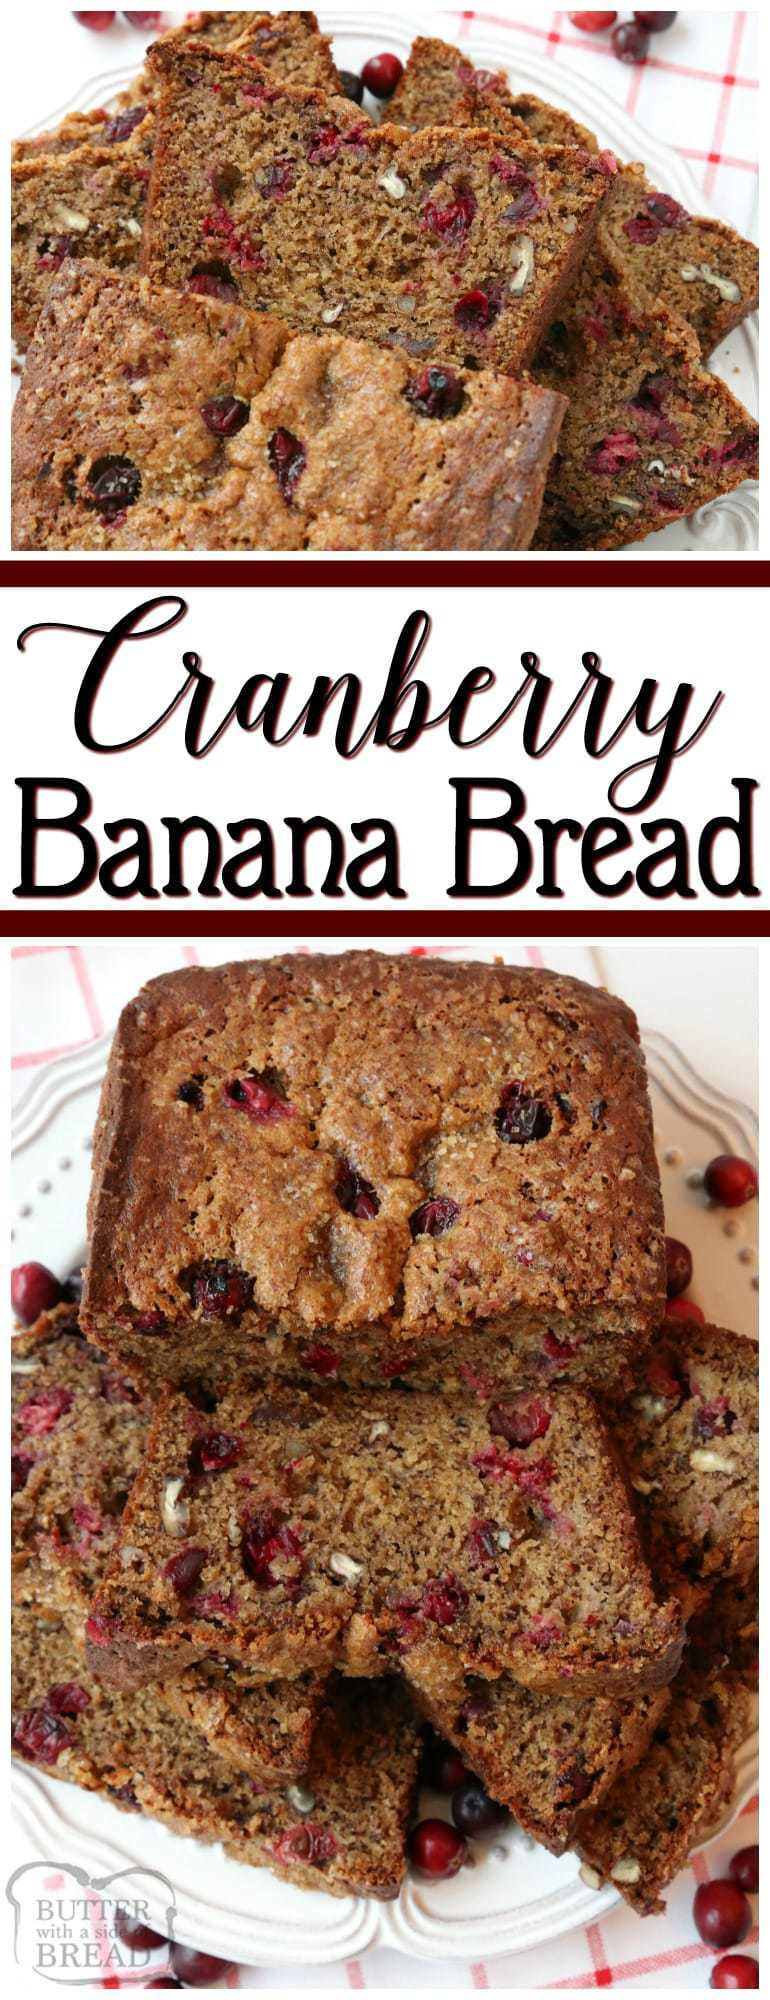 Cranberry Banana Bread is made with flavorful fresh cranberries, sweet bananas, cinnamon & nutmeg to make this fantastic take on traditional #banana #bread. Easy #quickbread #bananabread #recipe from Butter With A Side of Bread